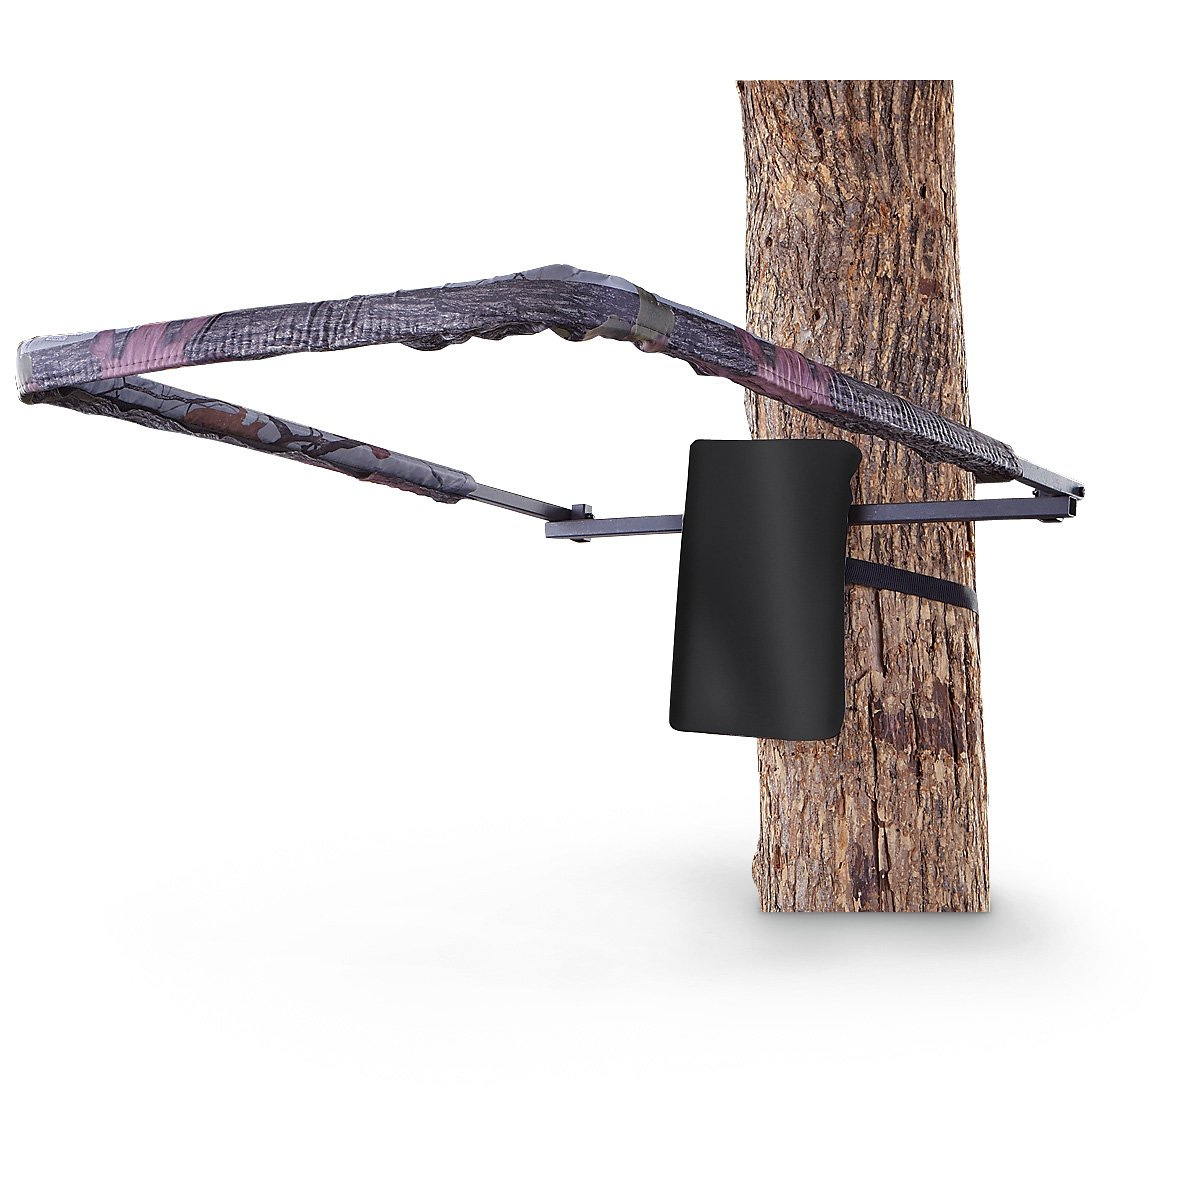 Redhead tree stand shooting rail